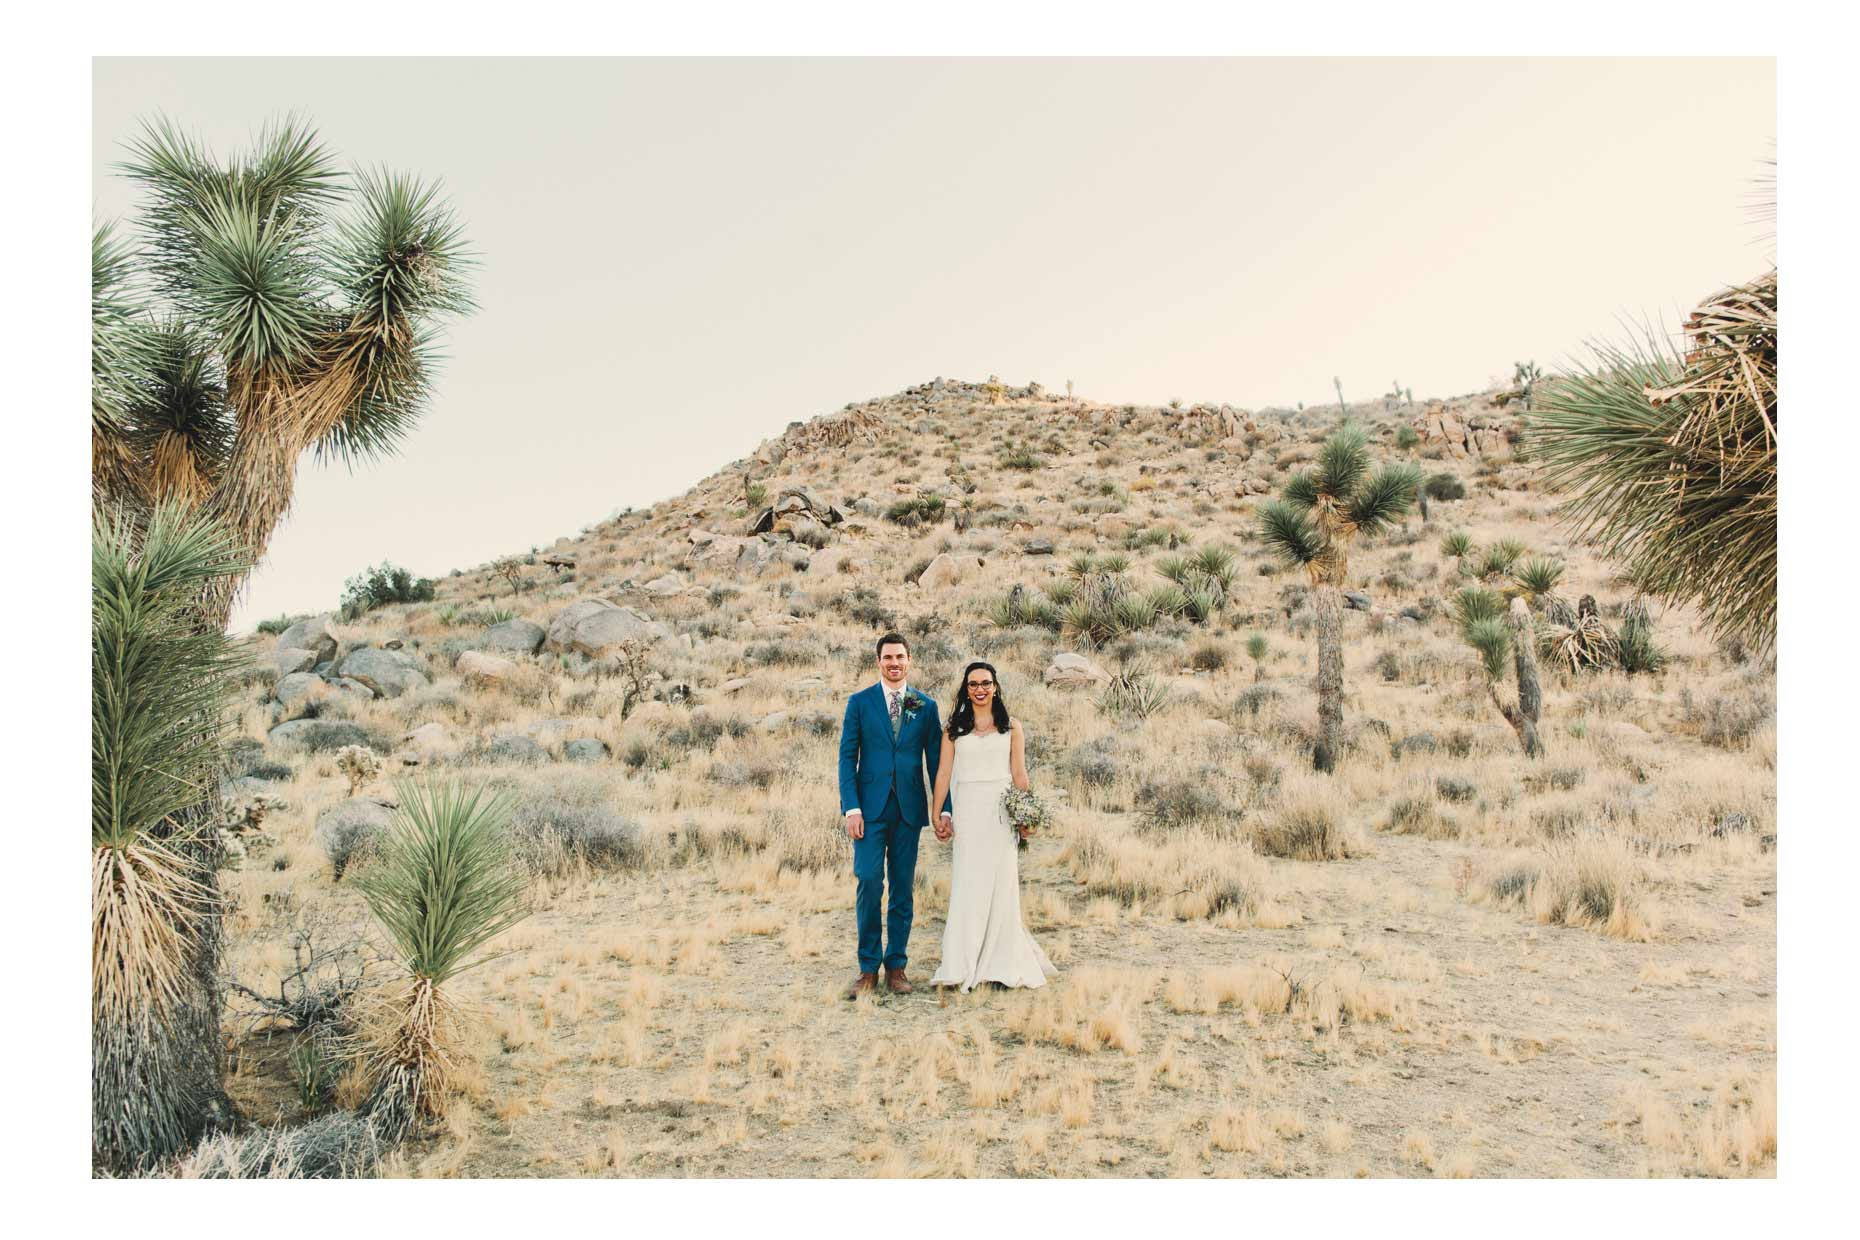 Joshua-Tree-Wedding-photographer-_-The-ruins-wedding-photographer-pioneertown-wedding-photographer-20